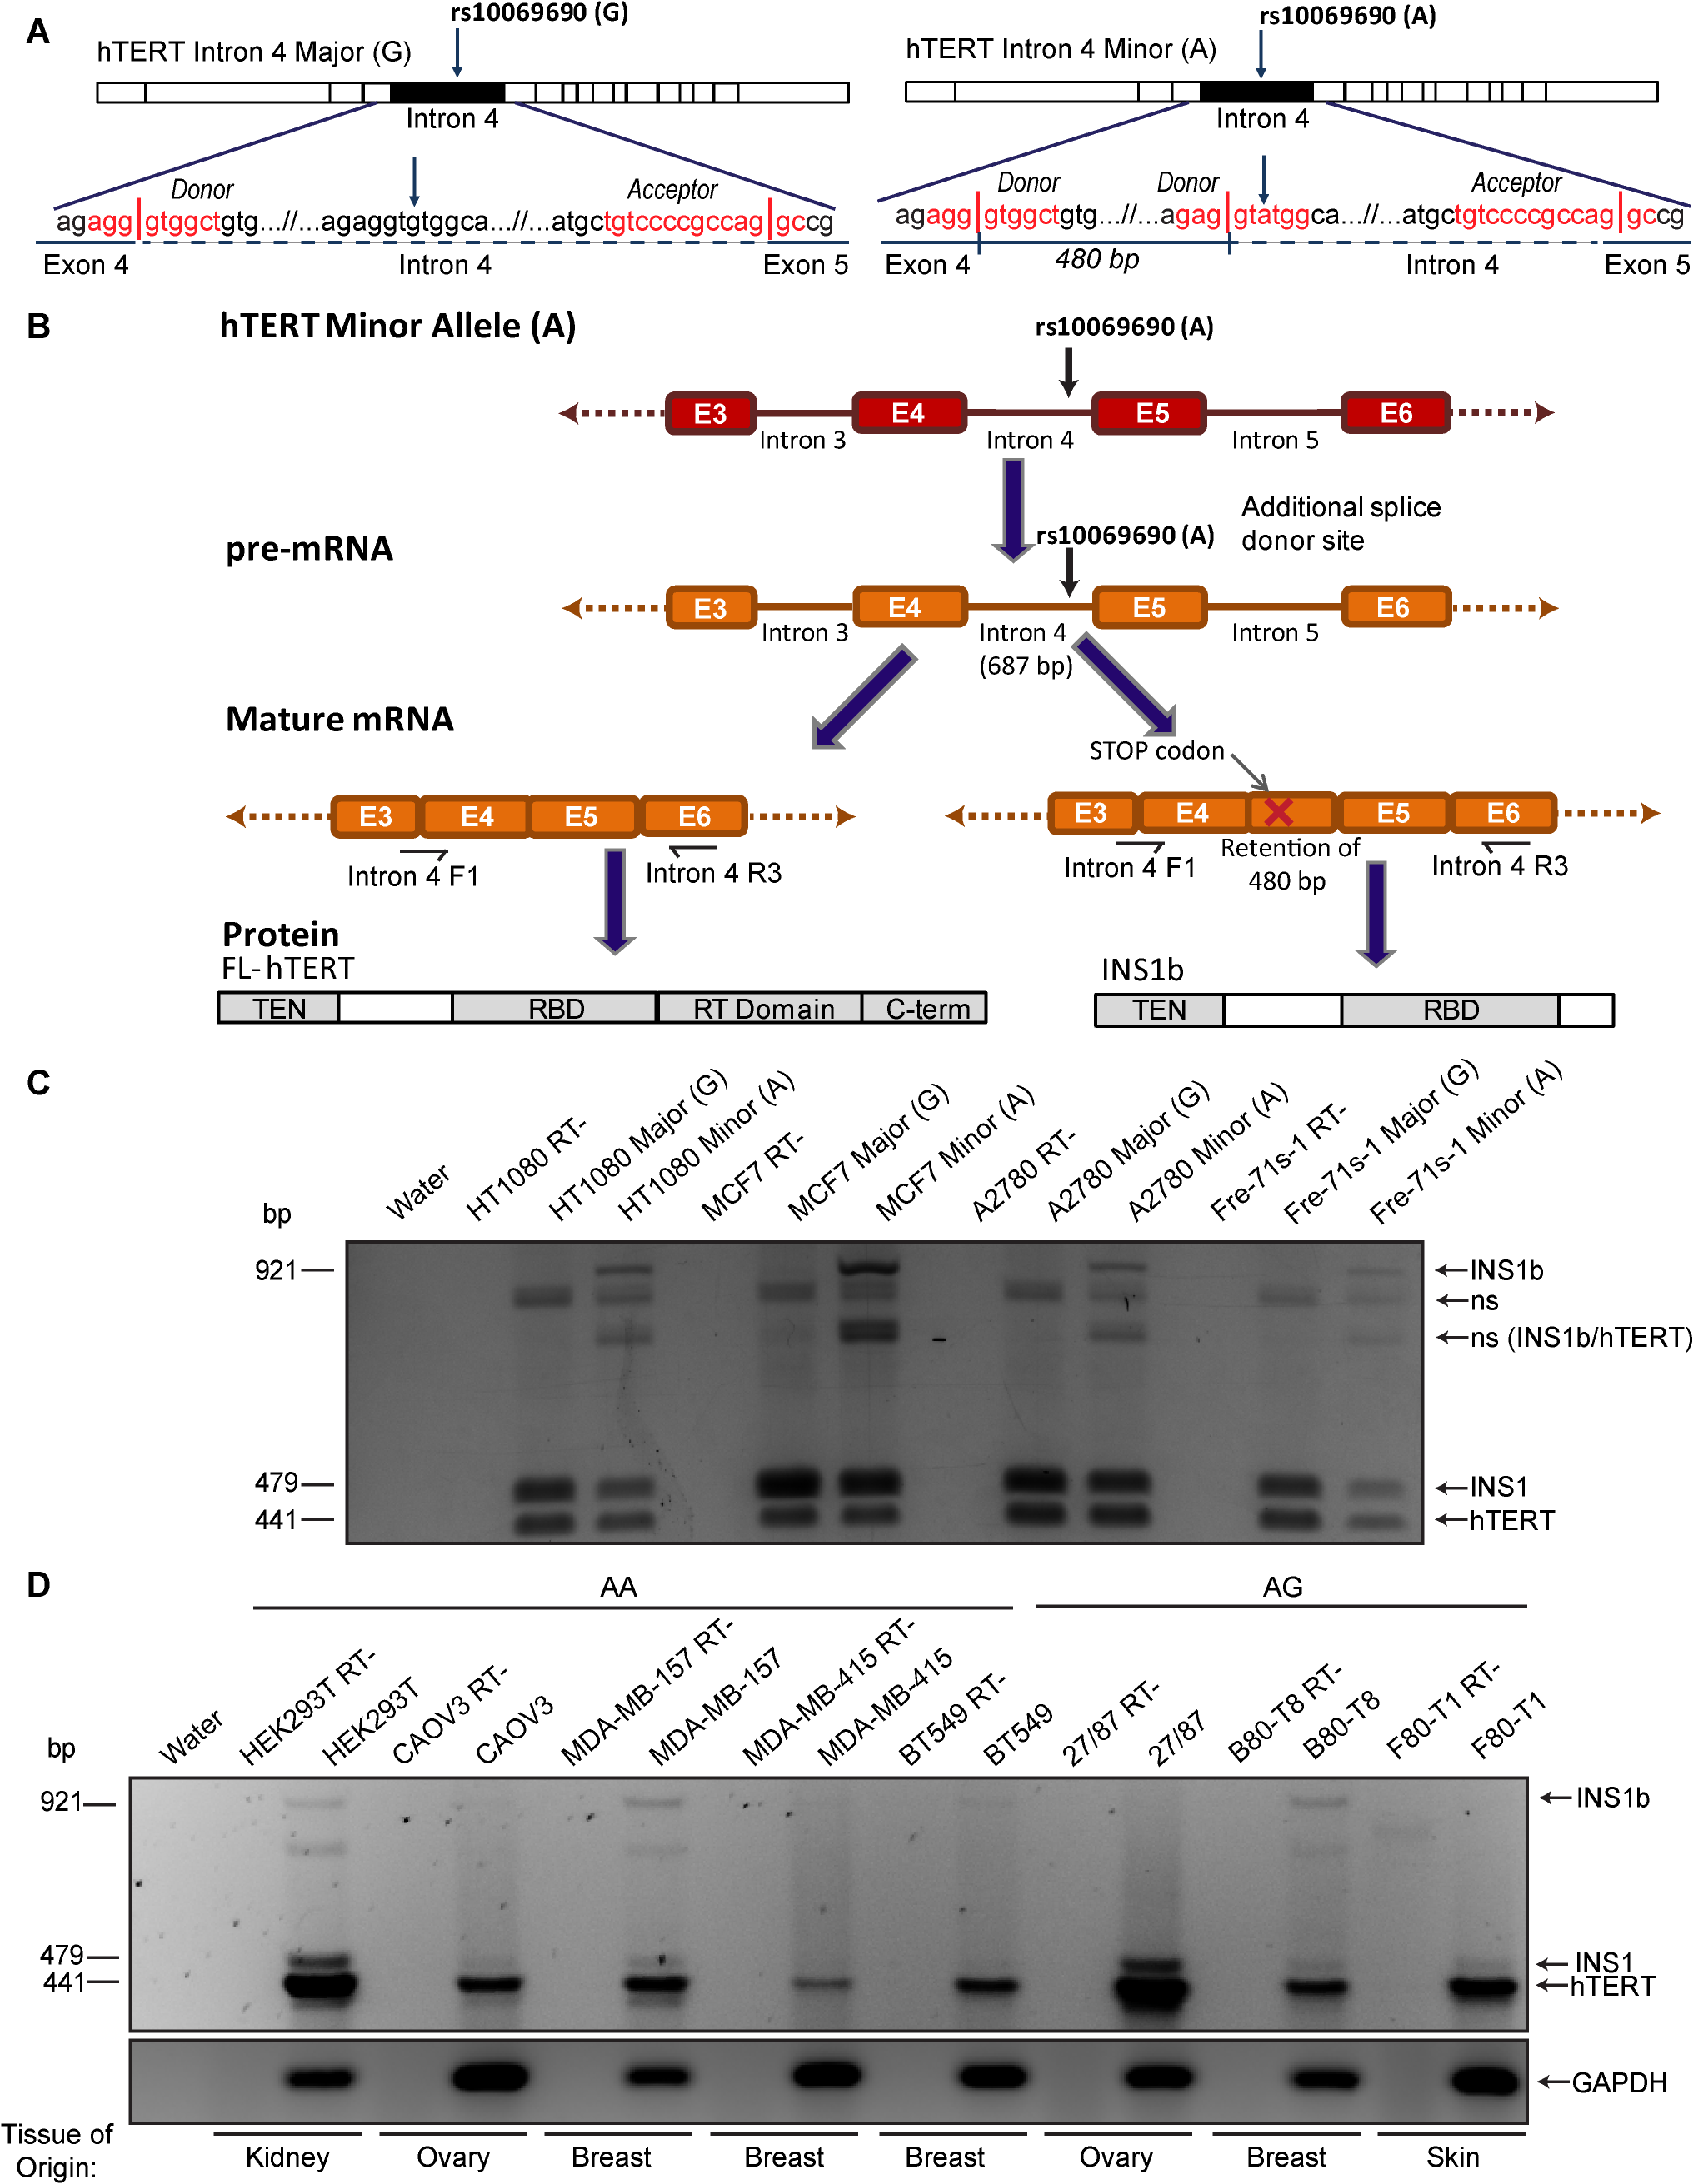 Cancer-associated rs10069690 minor allele results in alternative splicing of hTERT.